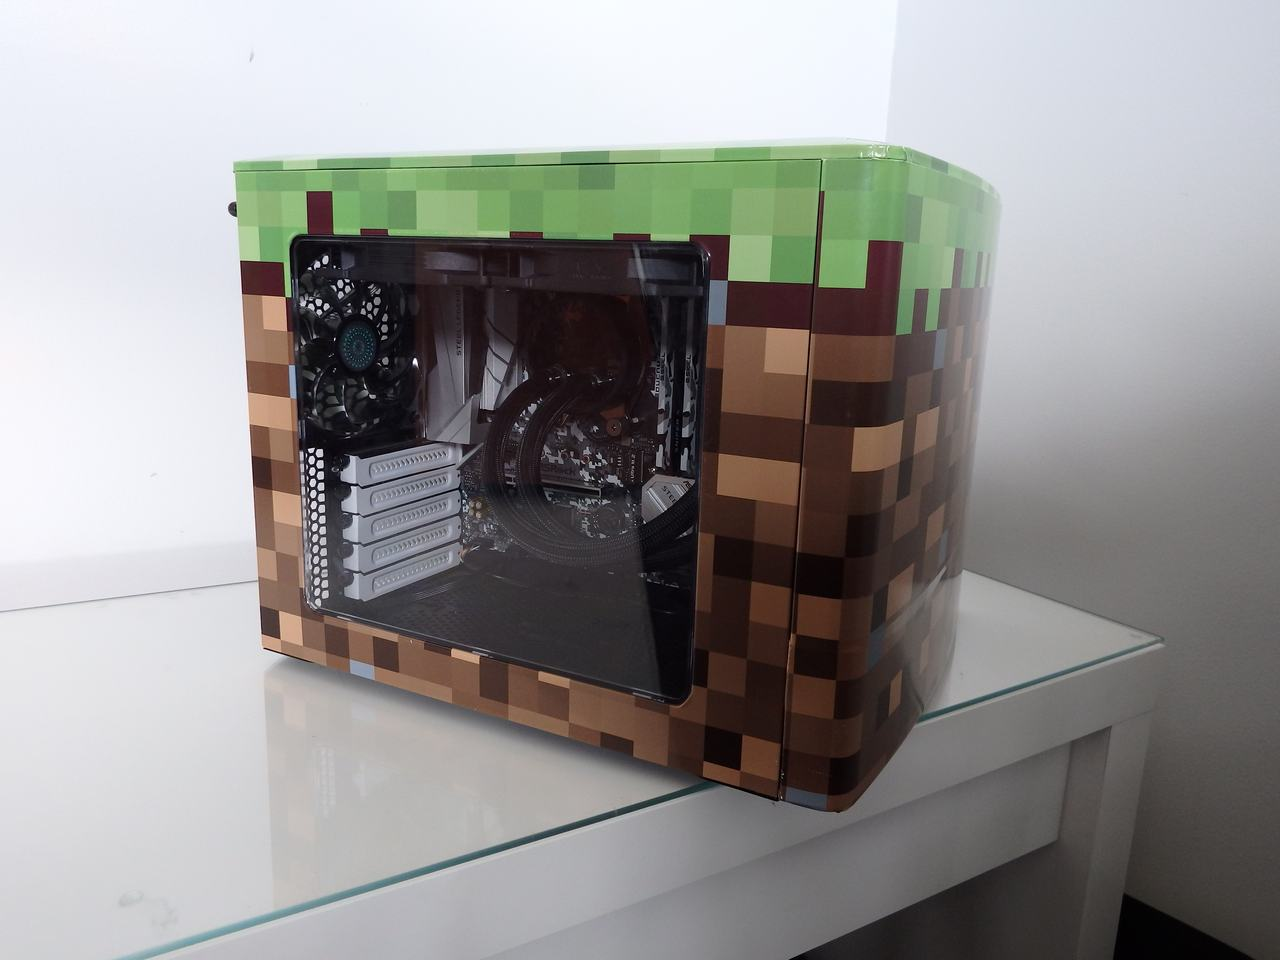 Minecraft PC Finished - left